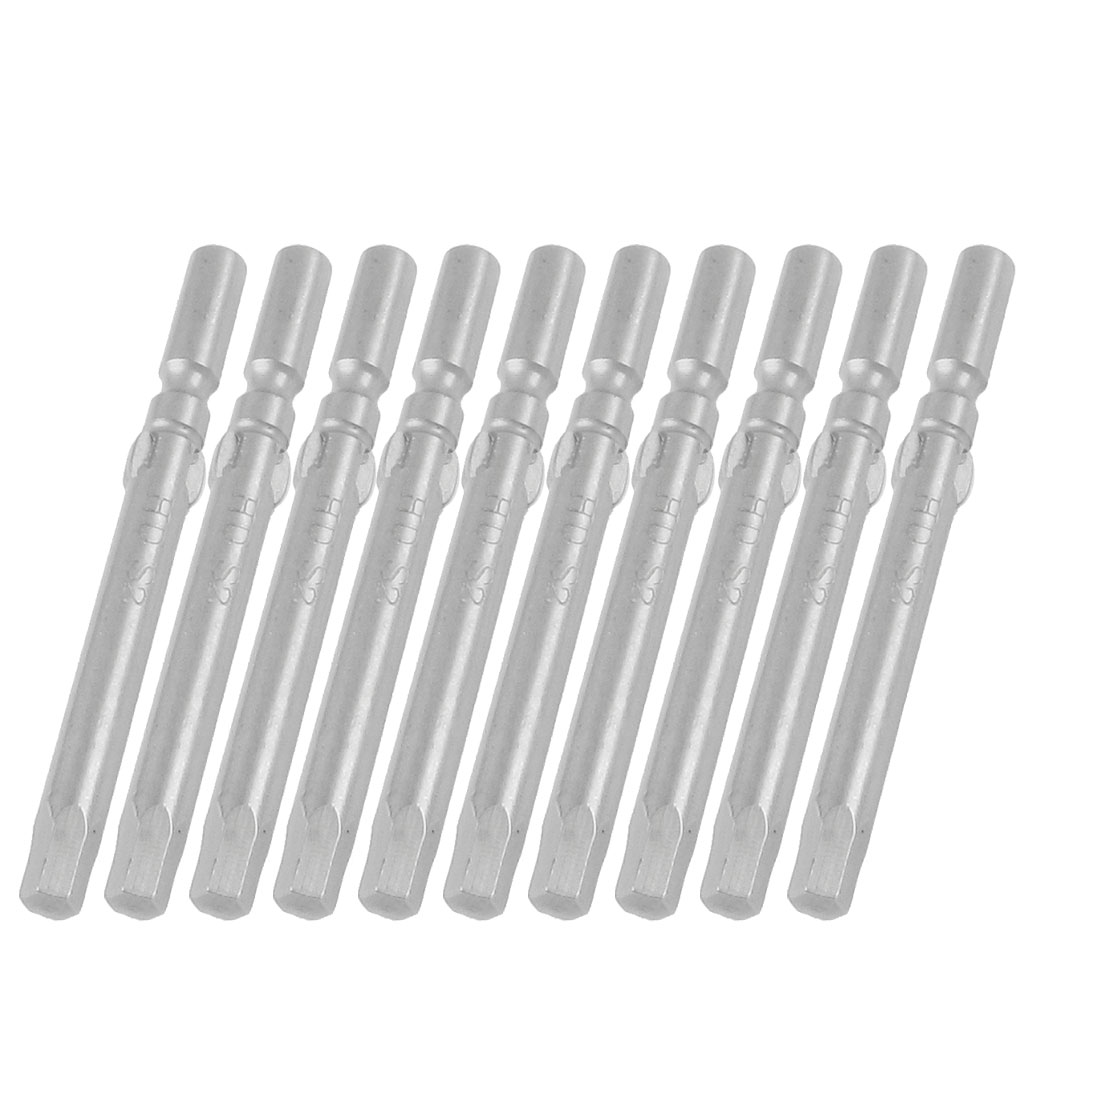 10 Pcs 5mm Round Shank Magnetic 4mm Tip Head Hex Screwdriver Bits Tool